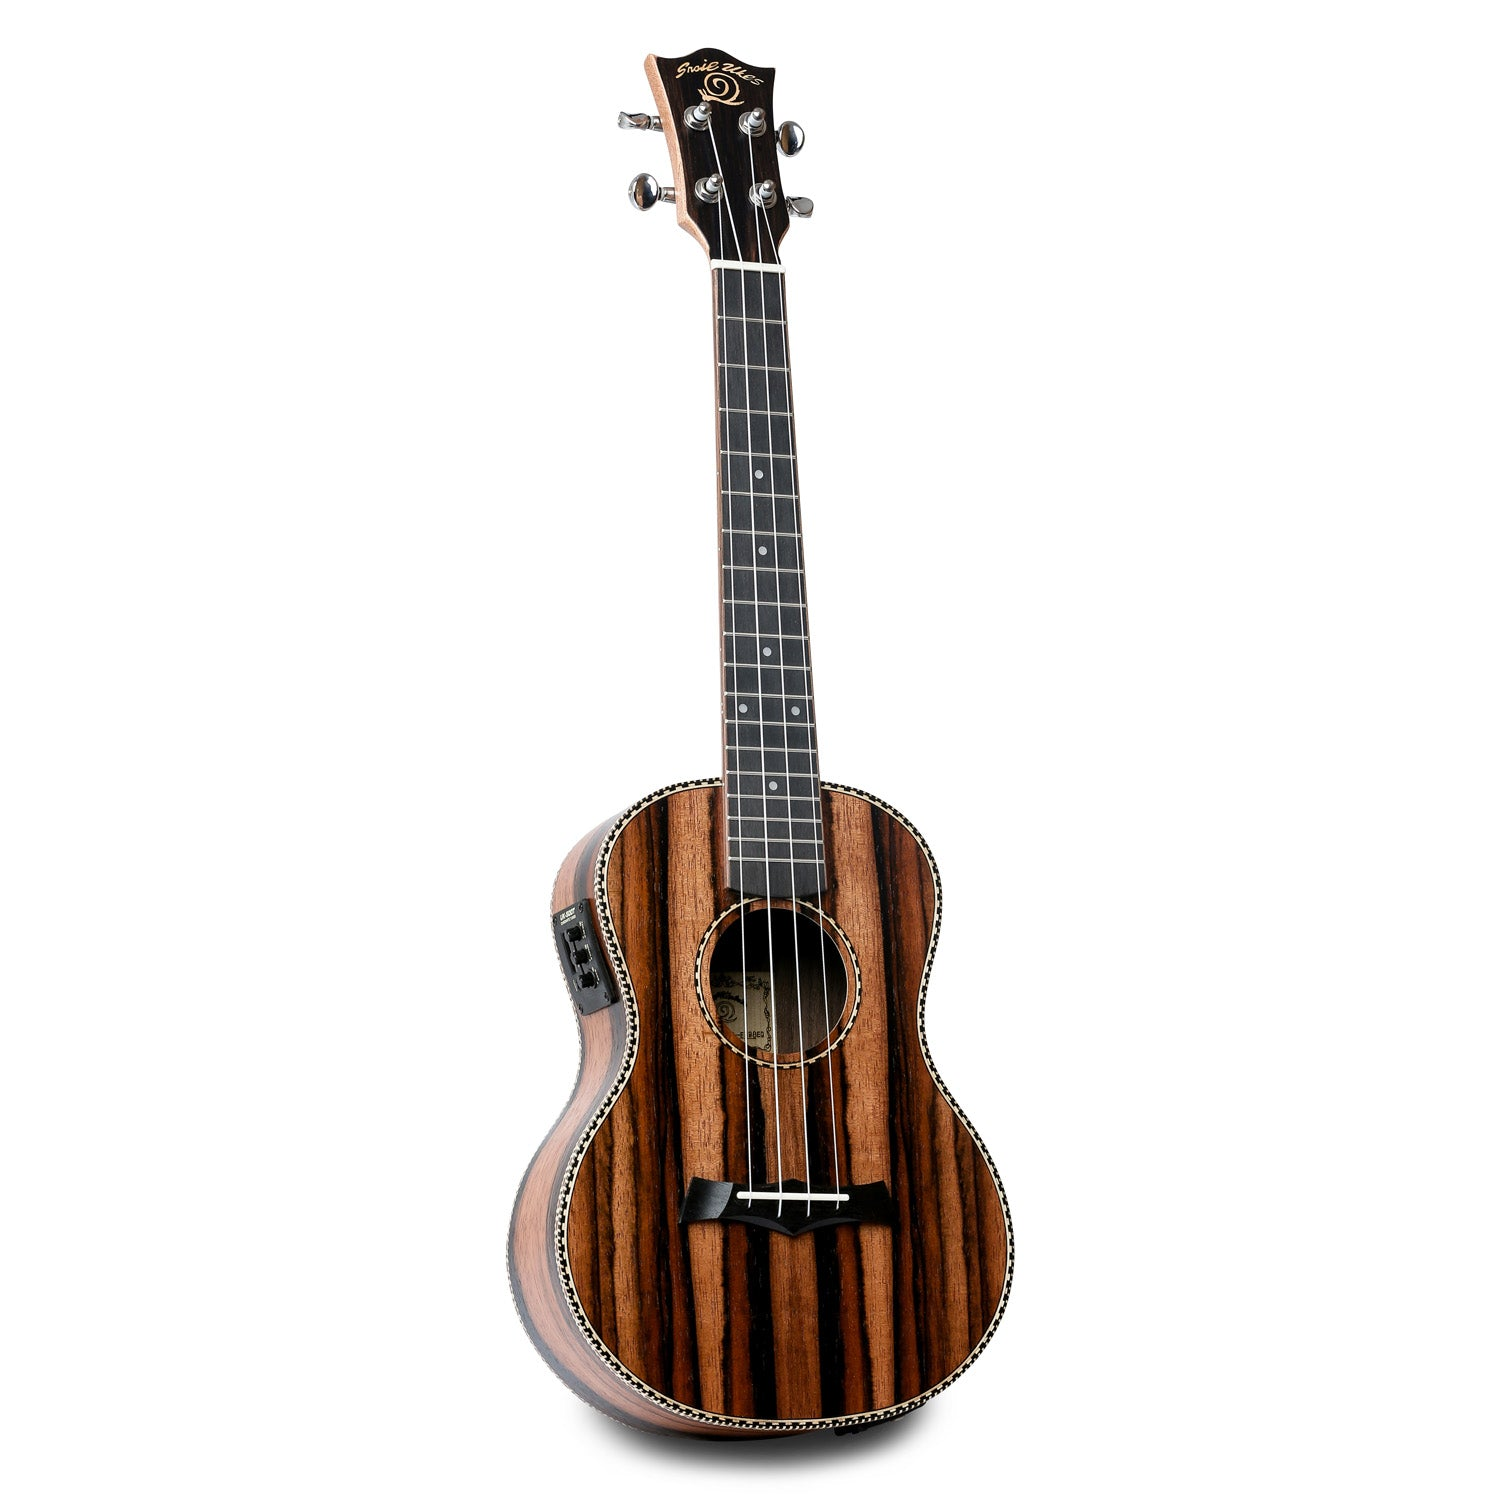 Snail UKT-E598EQ Electro-Acoustic Ebony Tenor Ukulele - Freebirdmusic